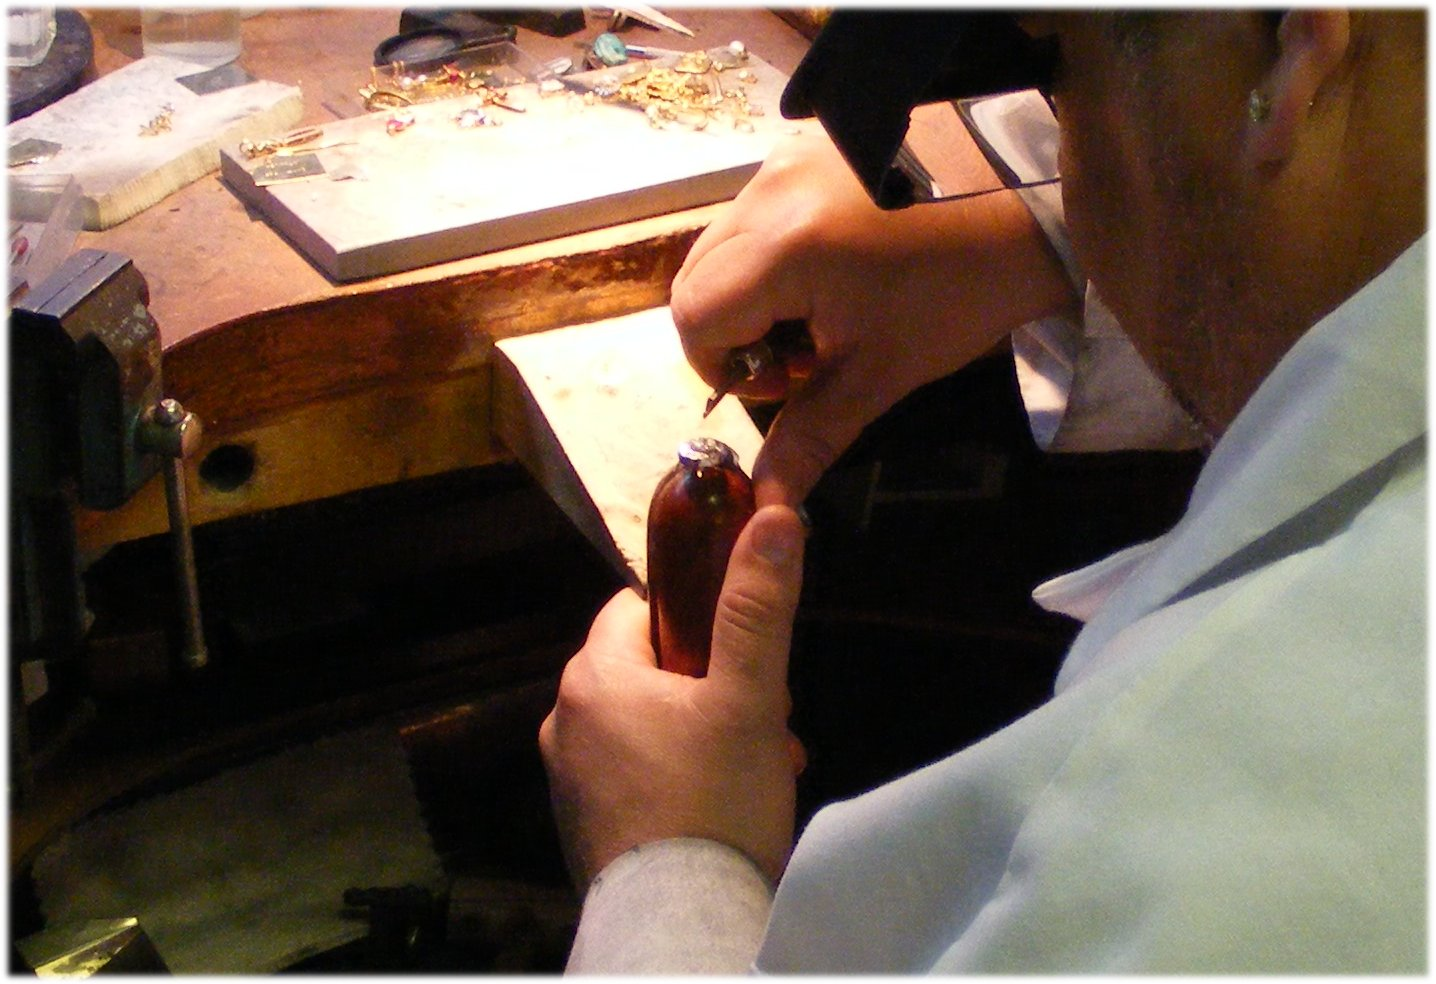 A goldsmith repairing jewelry.